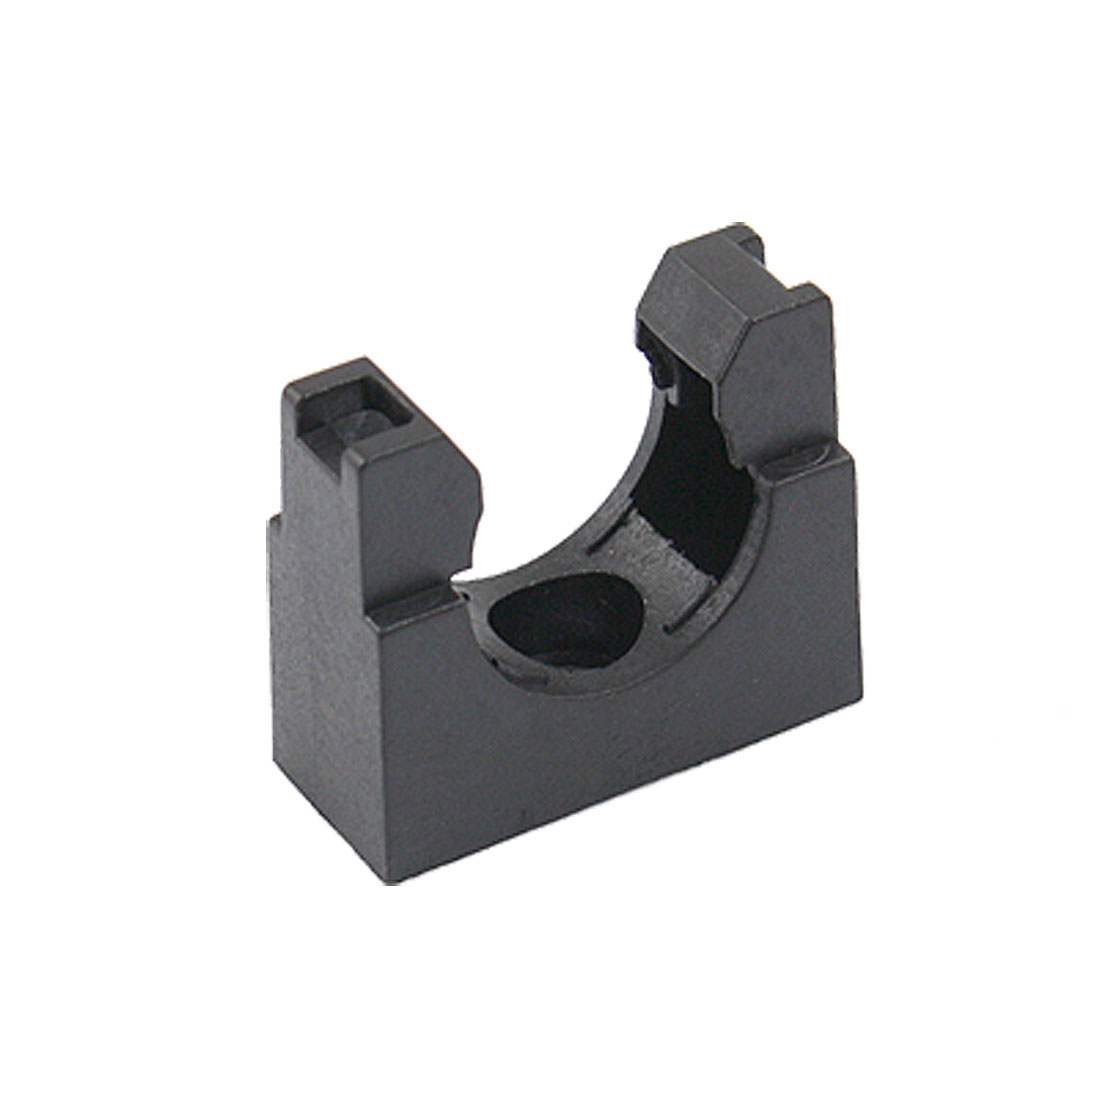 Black Plastic Mounting Bracket for 22mm Corrugated Conduit